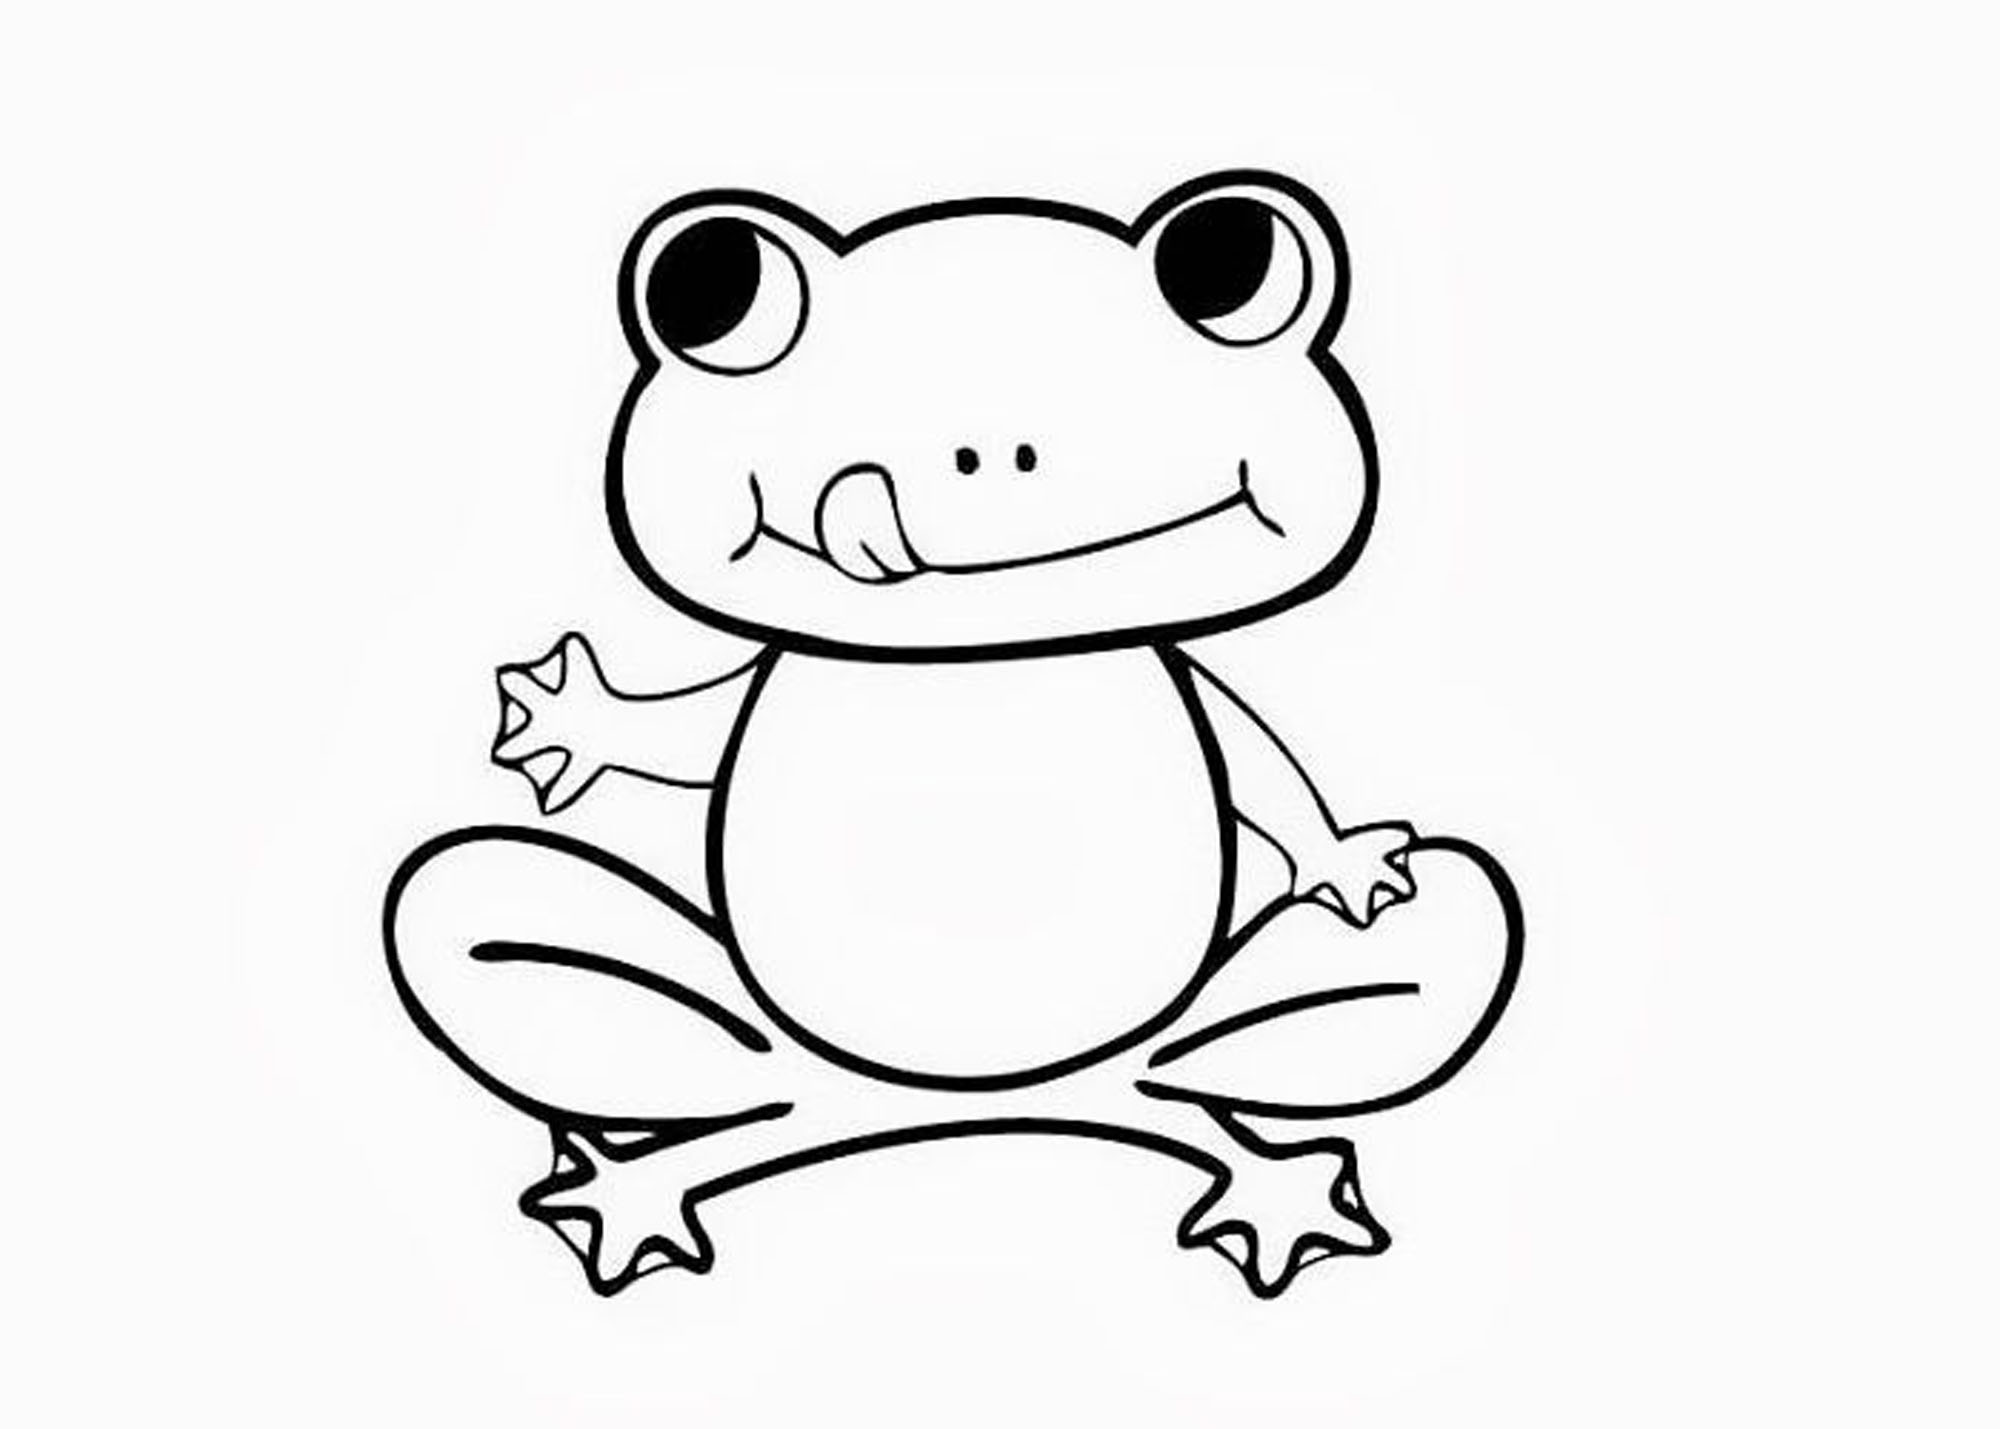 coloring images of frog frogs free to color for children frogs kids coloring pages coloring of images frog